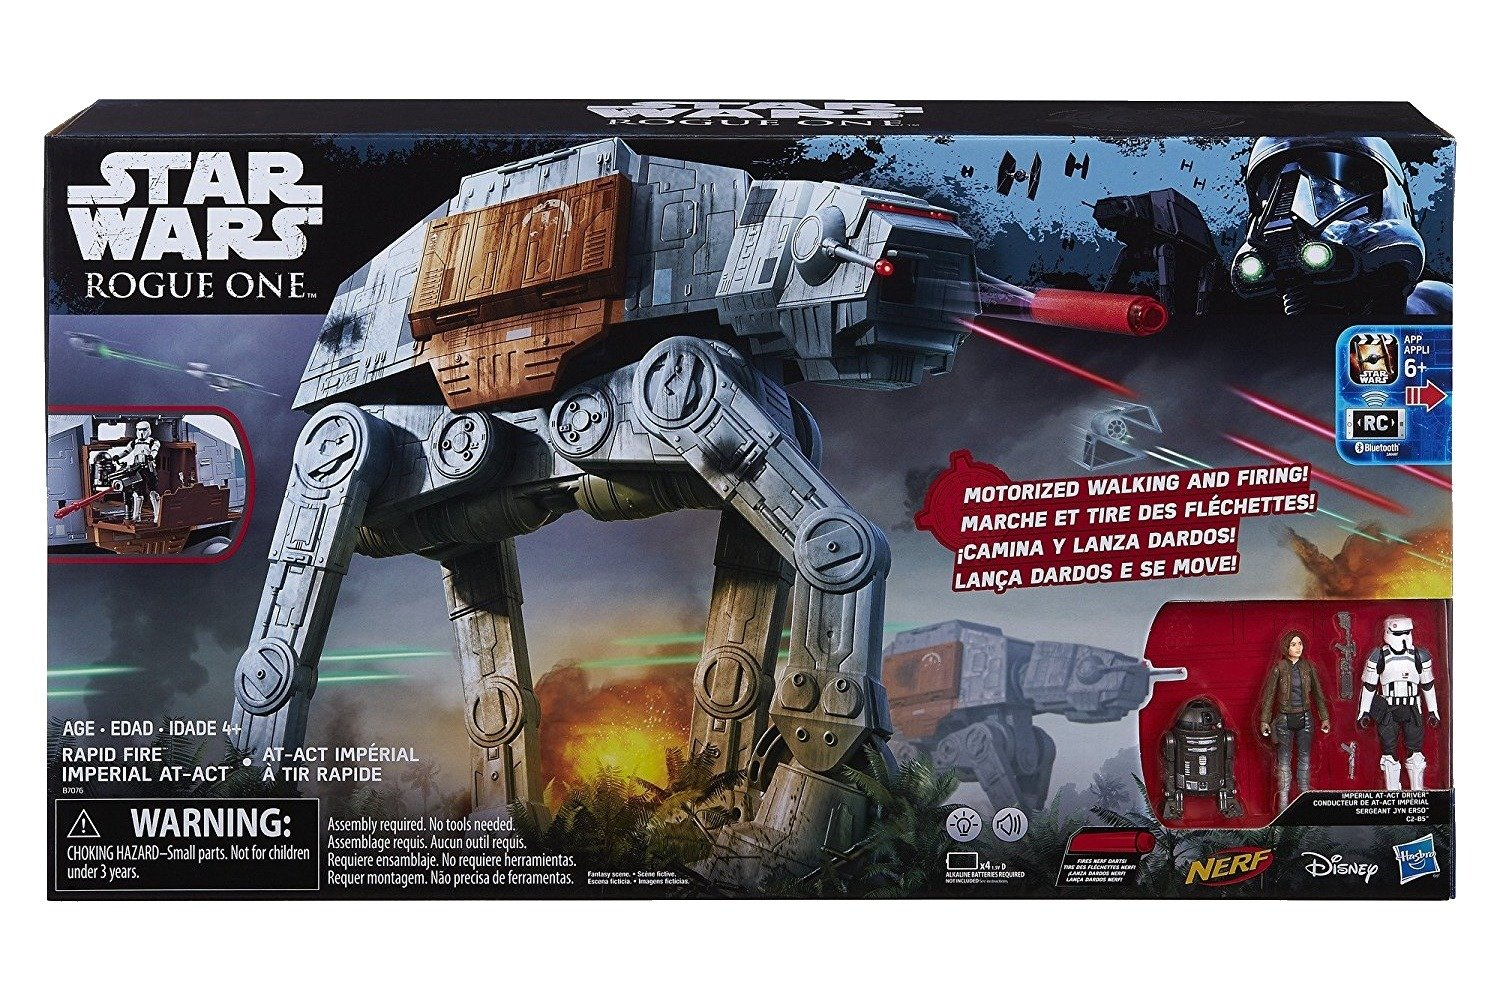 Star Wars Rogue One Rapid Fire Imperial AT-ACT